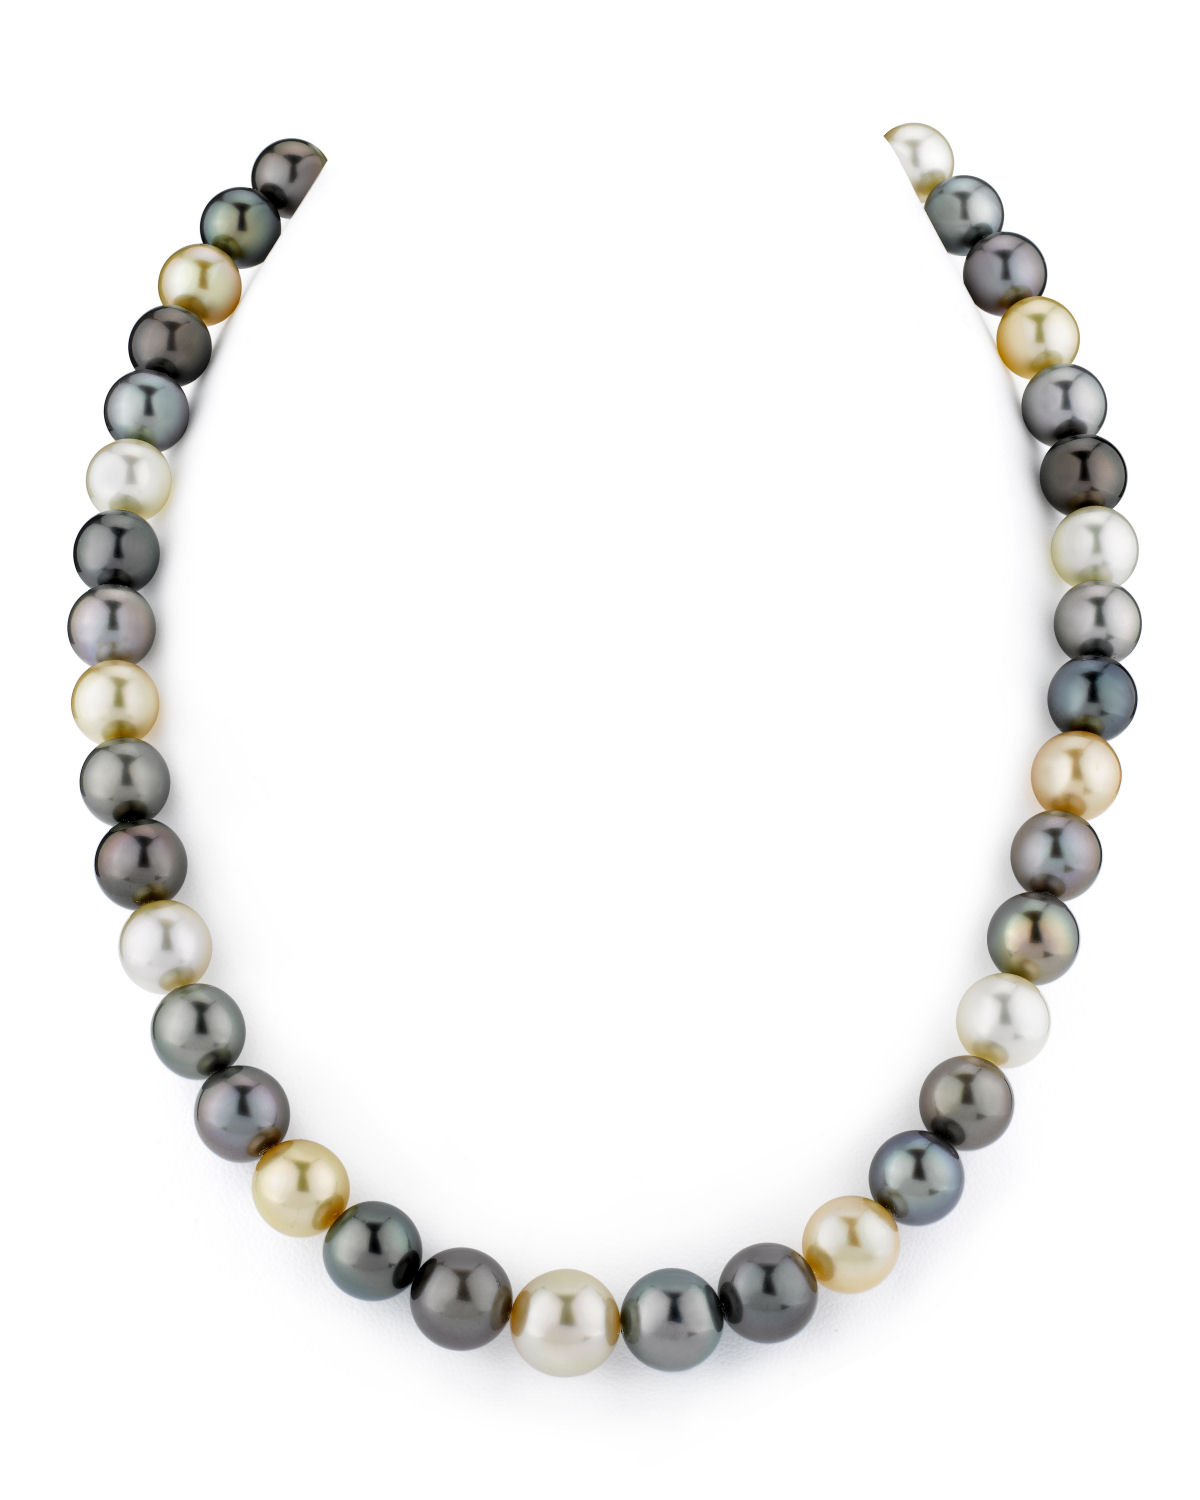 9-11mm Tahitian & Golden South Sea Multicolor Pearl Necklace - AAAA Quality